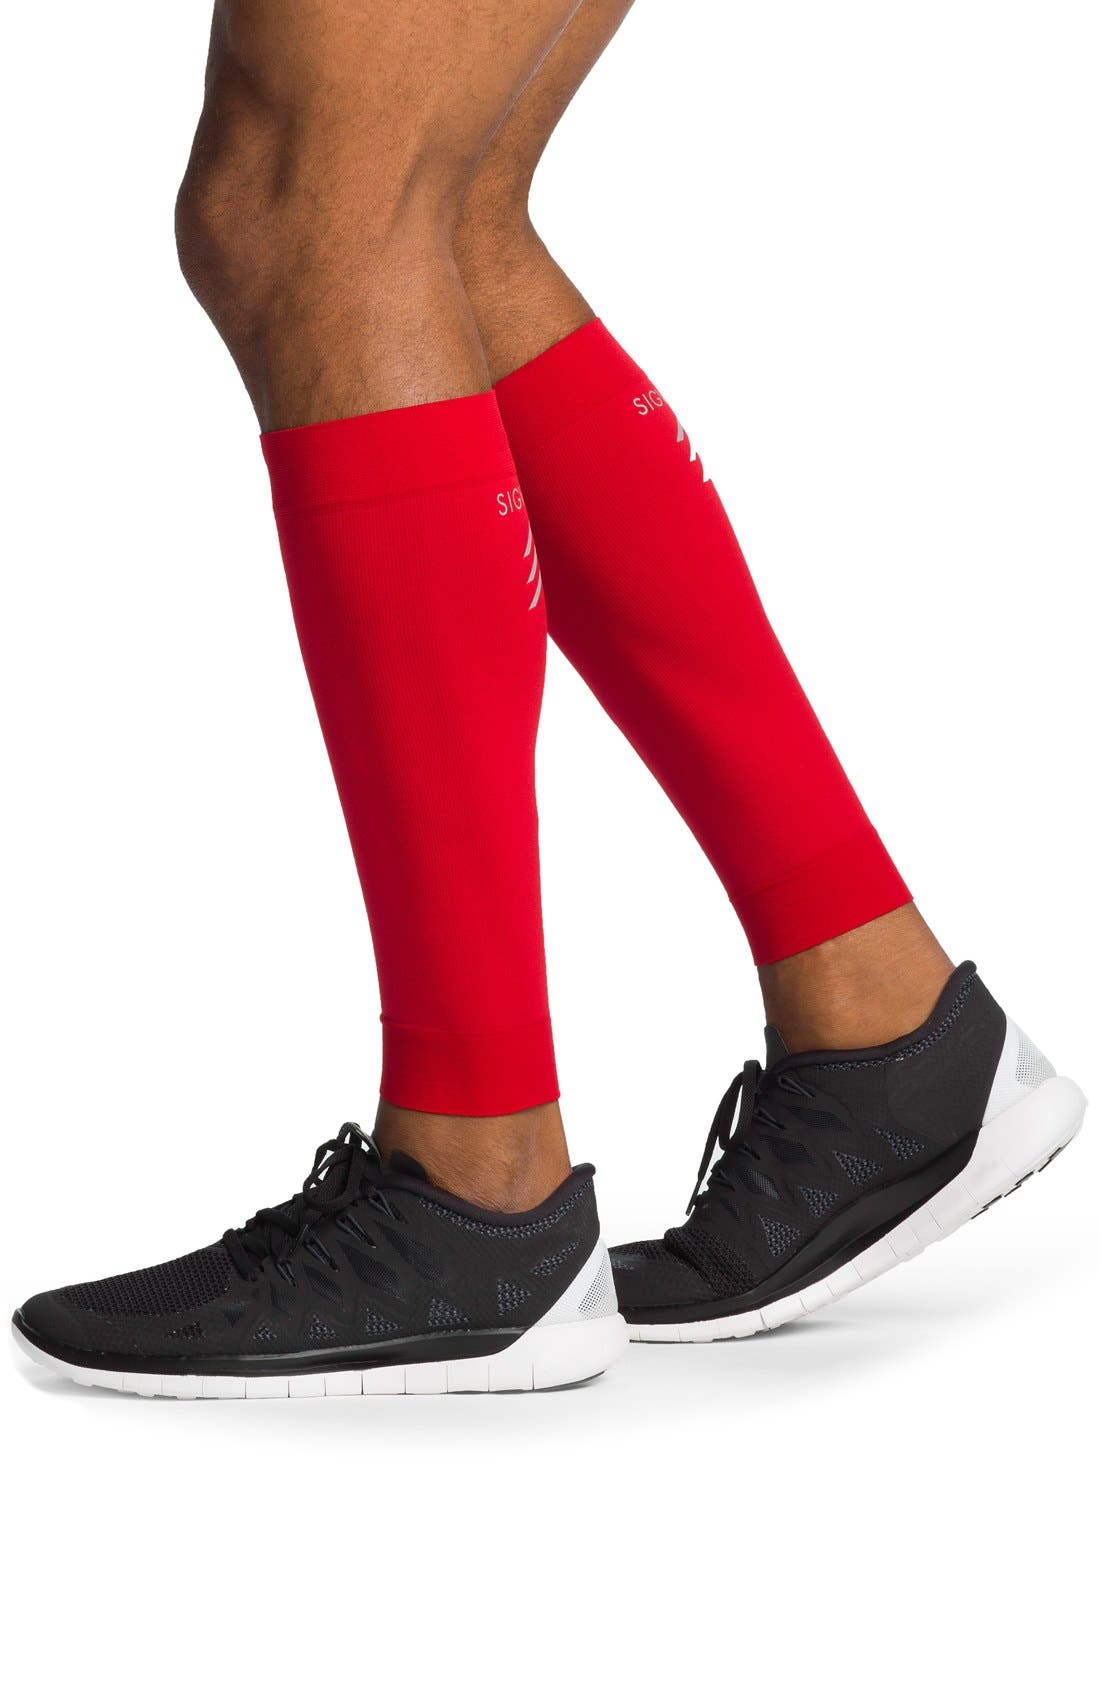 Alternate Image 2  - INSIGNIA by SIGVARIS 'Sports' Graduated Compression Performance Calf Sleeve